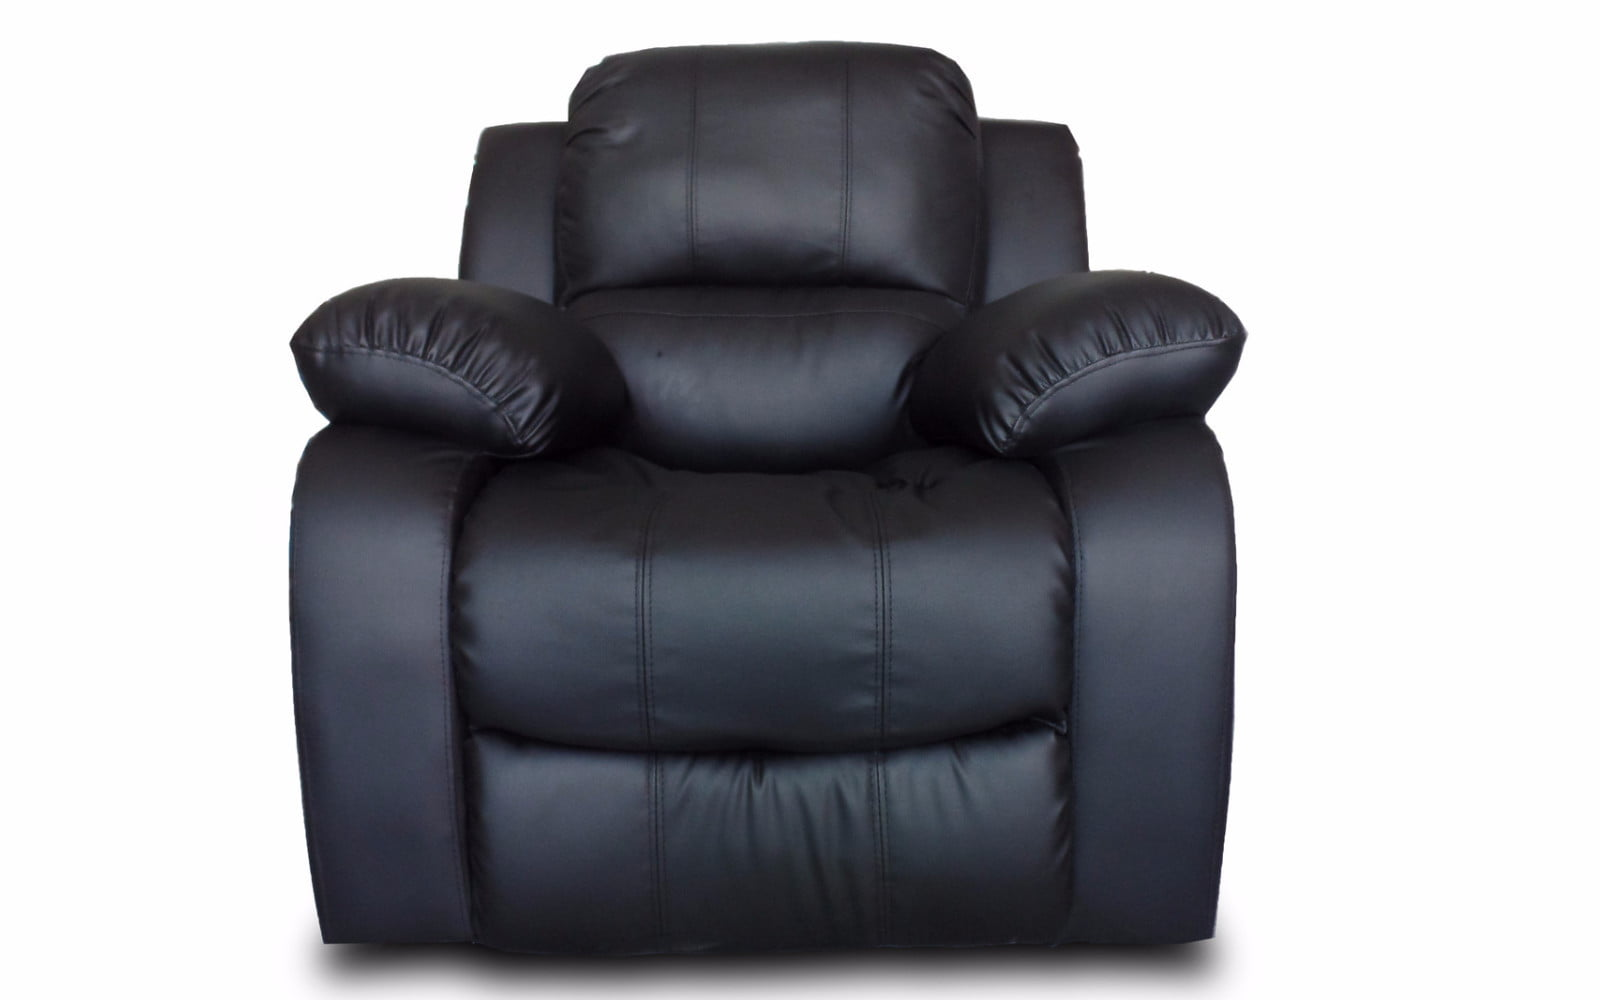 Classic Oversize and Overstuffed Single Seat Bonded Leather Recliner Chair by Overstock